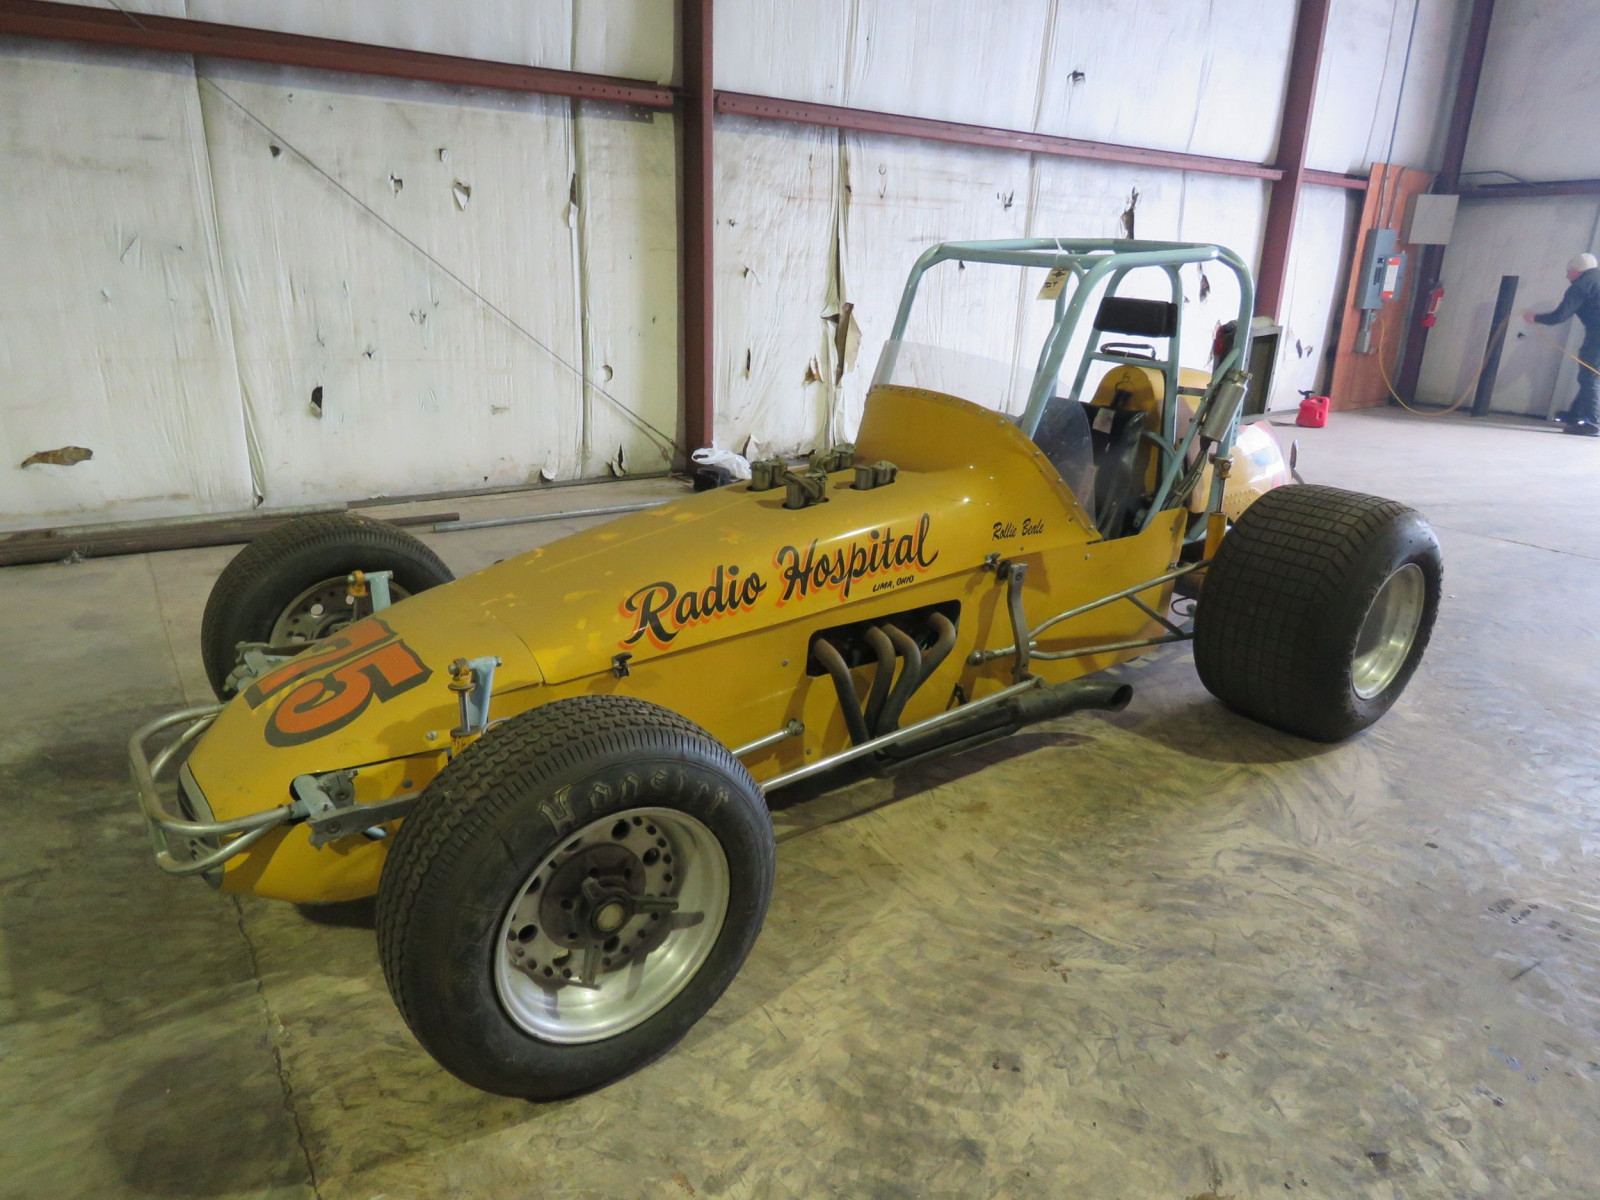 1972 fuel Injected Midget Race Car - Image 1